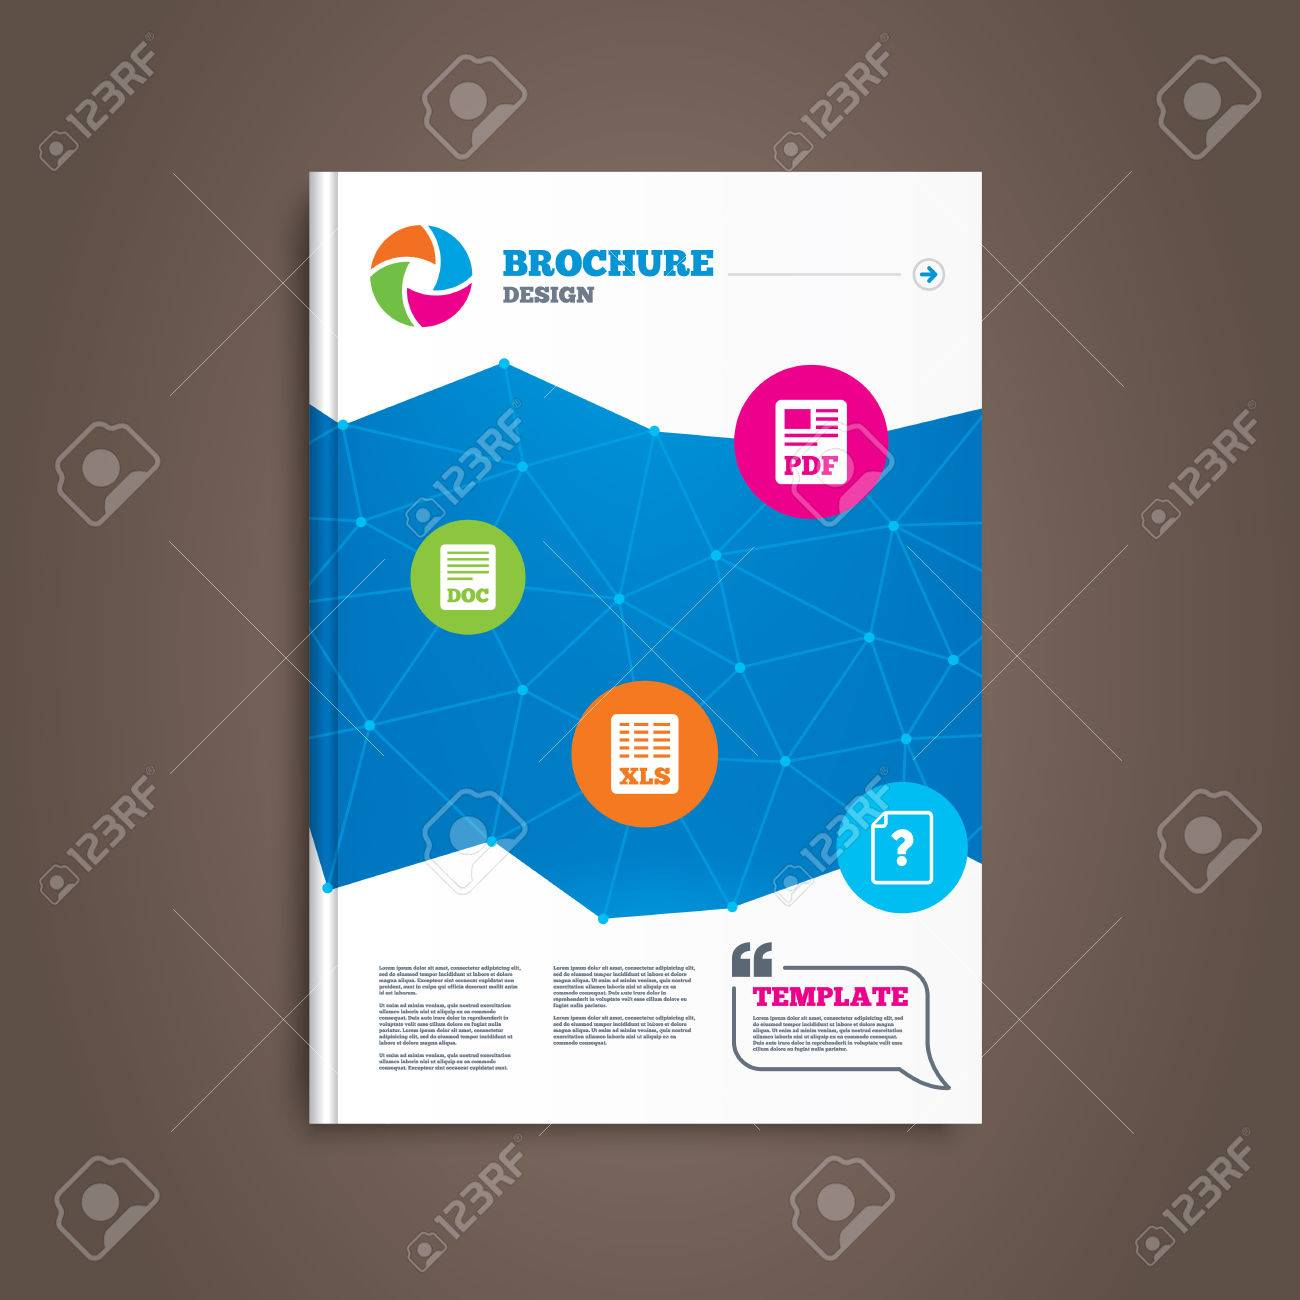 brochure or flyer design file document and question icons xls